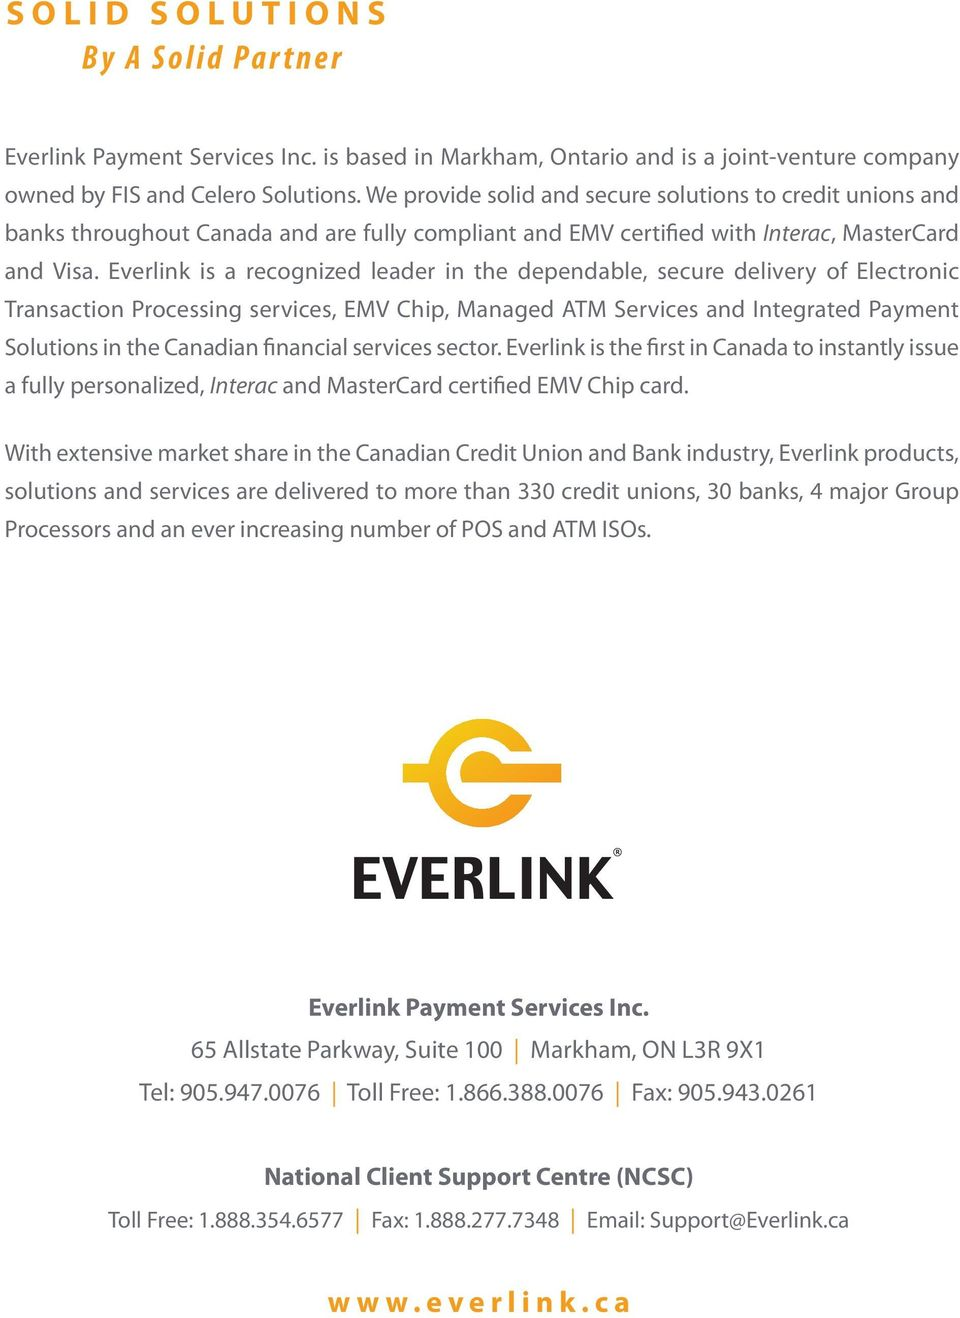 Everlink is a recognized leader in the dependable, secure delivery of Electronic Transaction Processing services, EMV Chip, Managed ATM Services and Integrated Payment Solutions in the Canadian